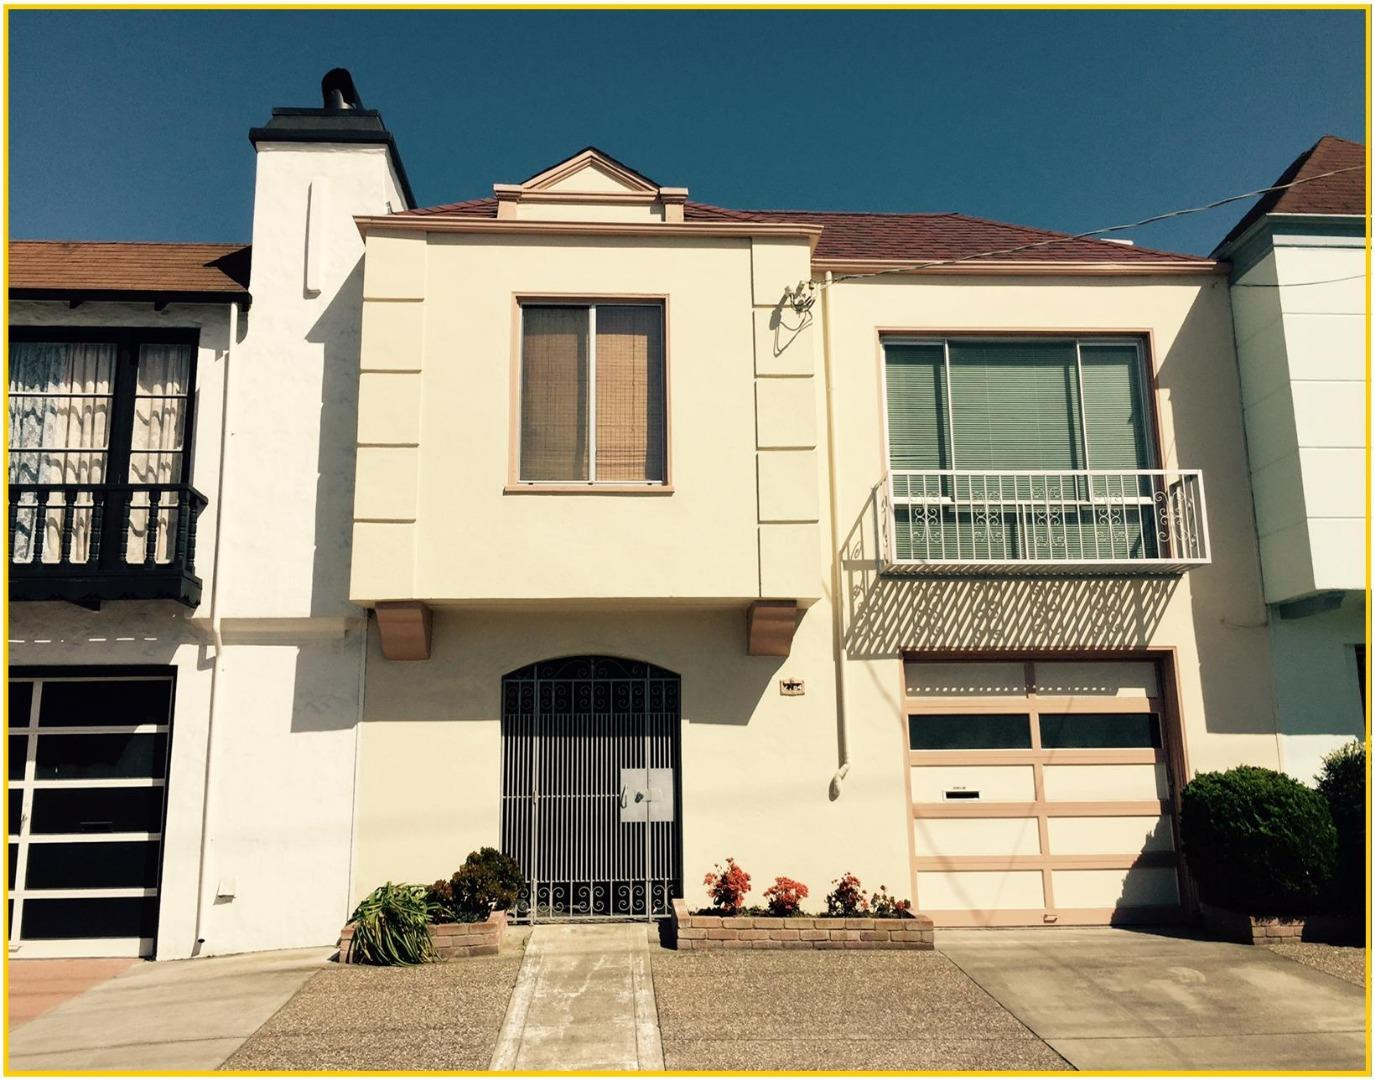 2764 35th Ave, San Francisco, CA 94116